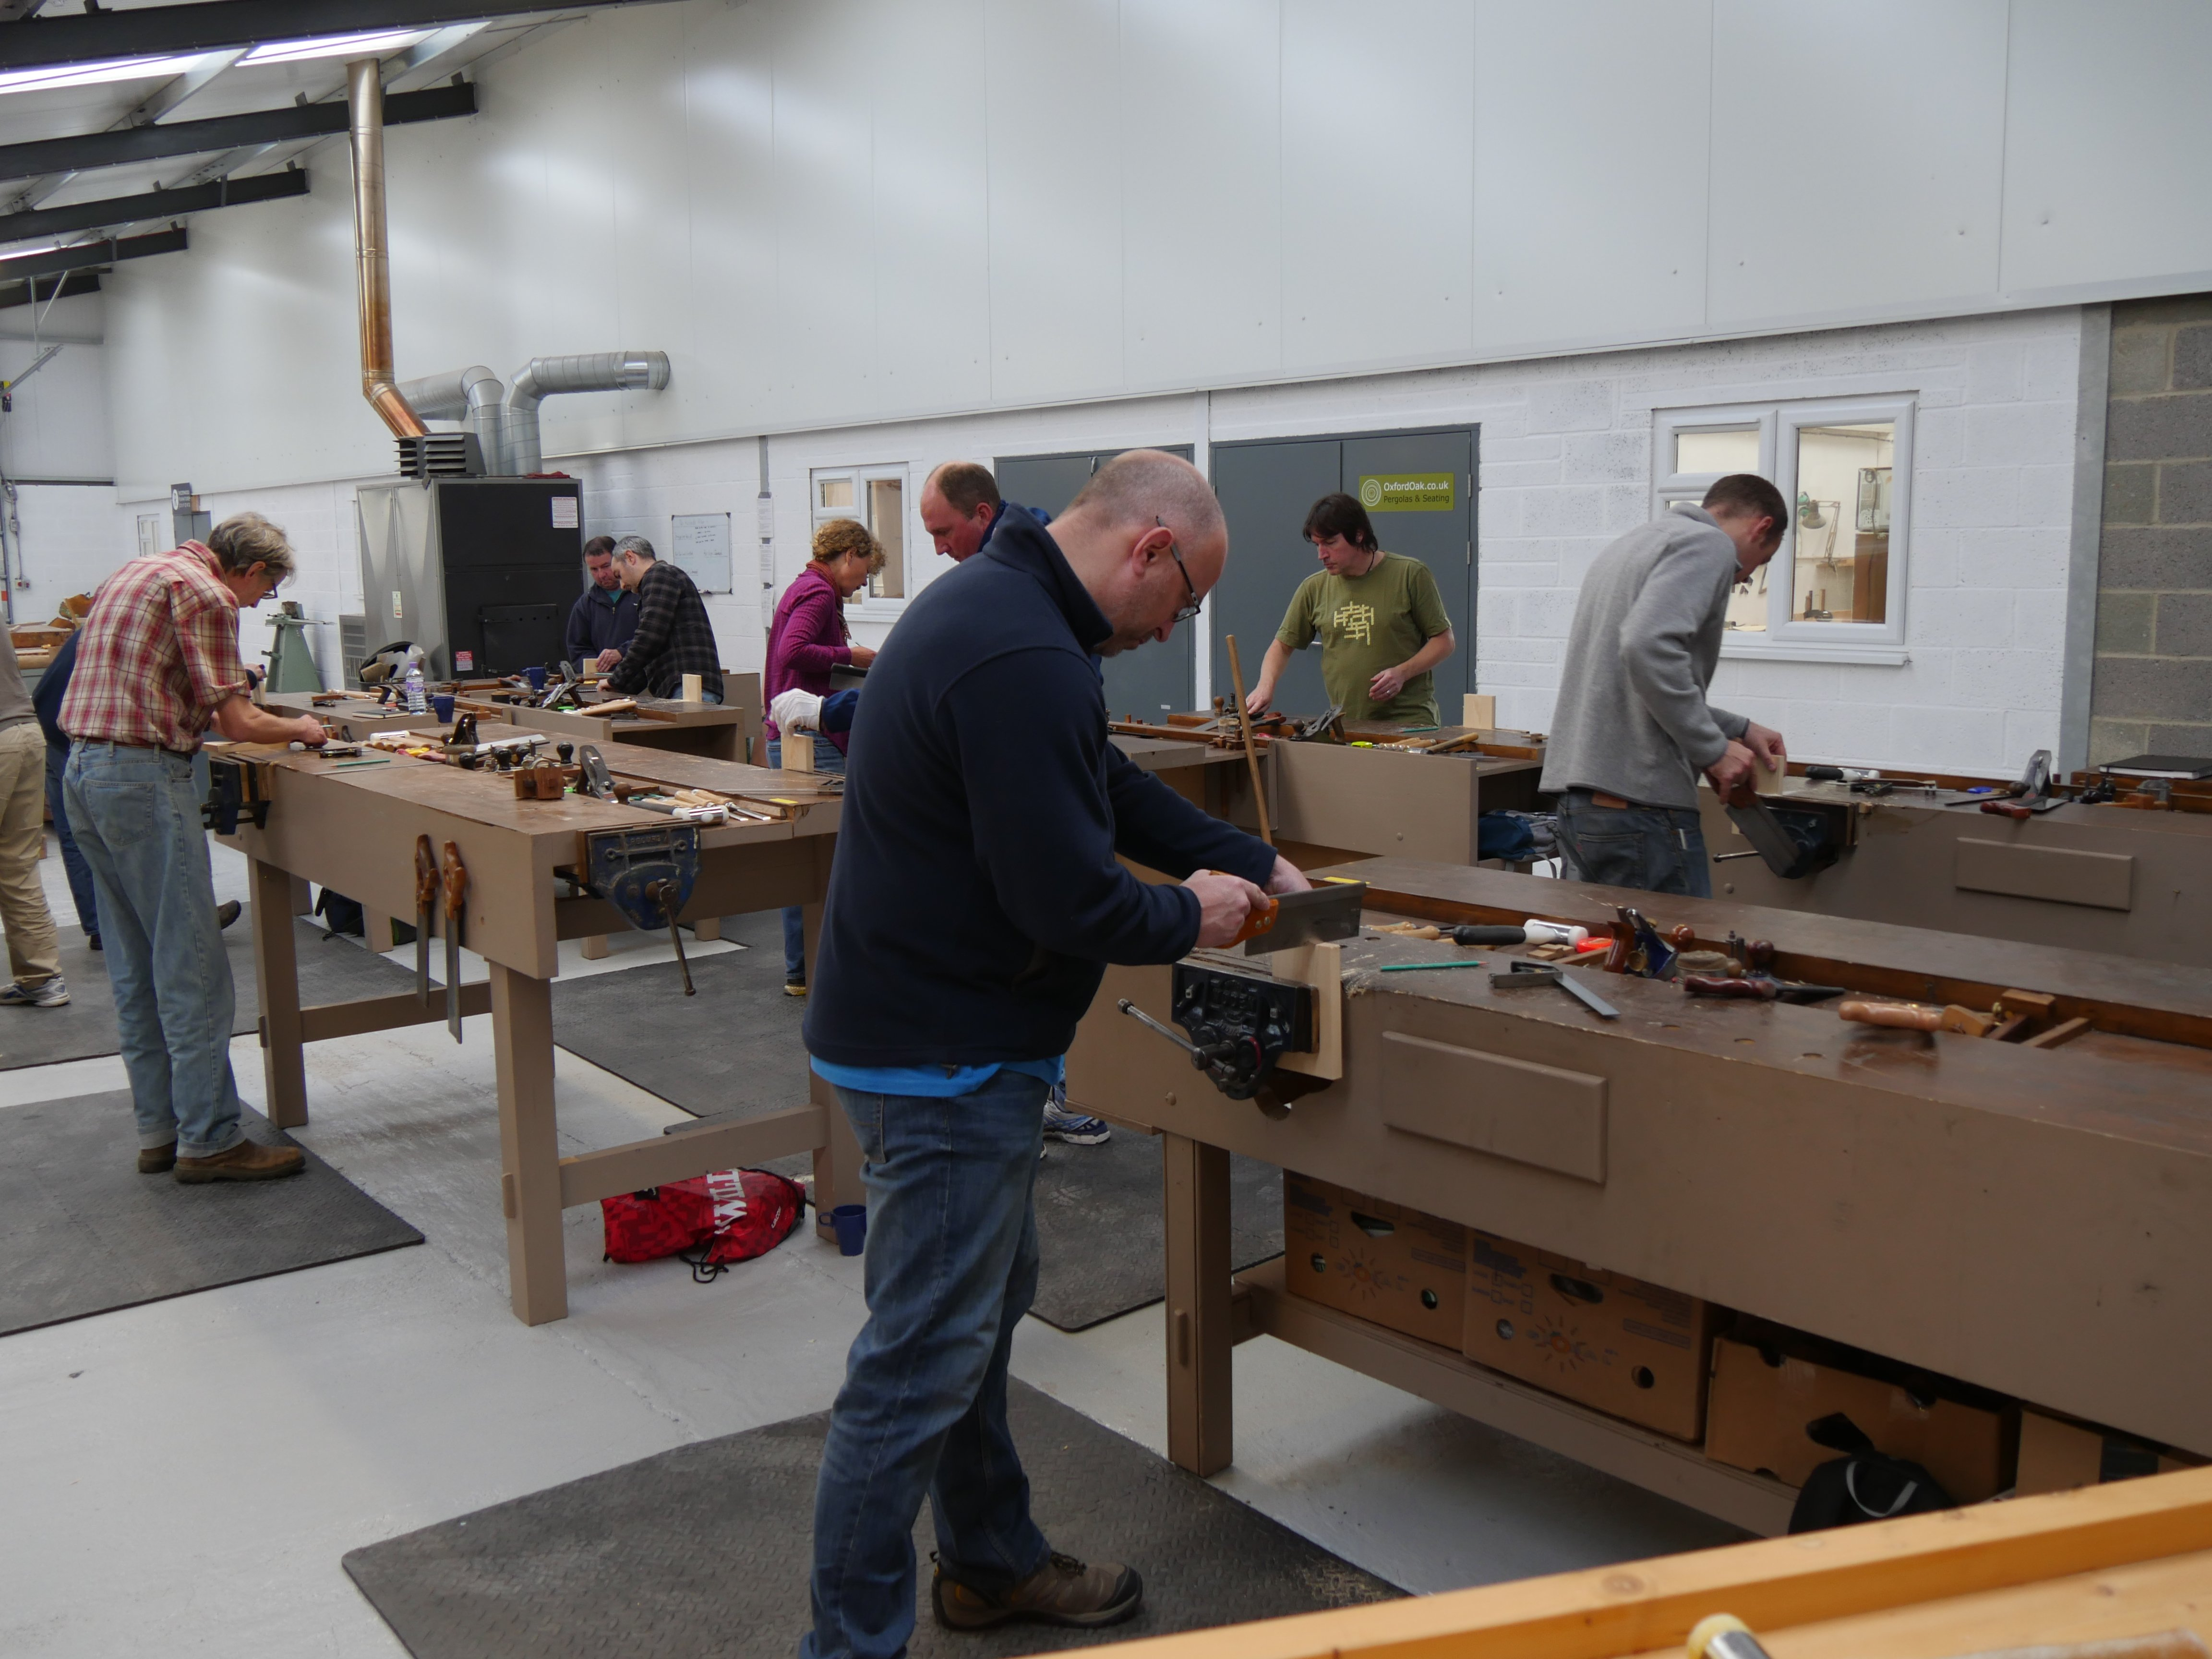 my first class in england - paul sellers' blog